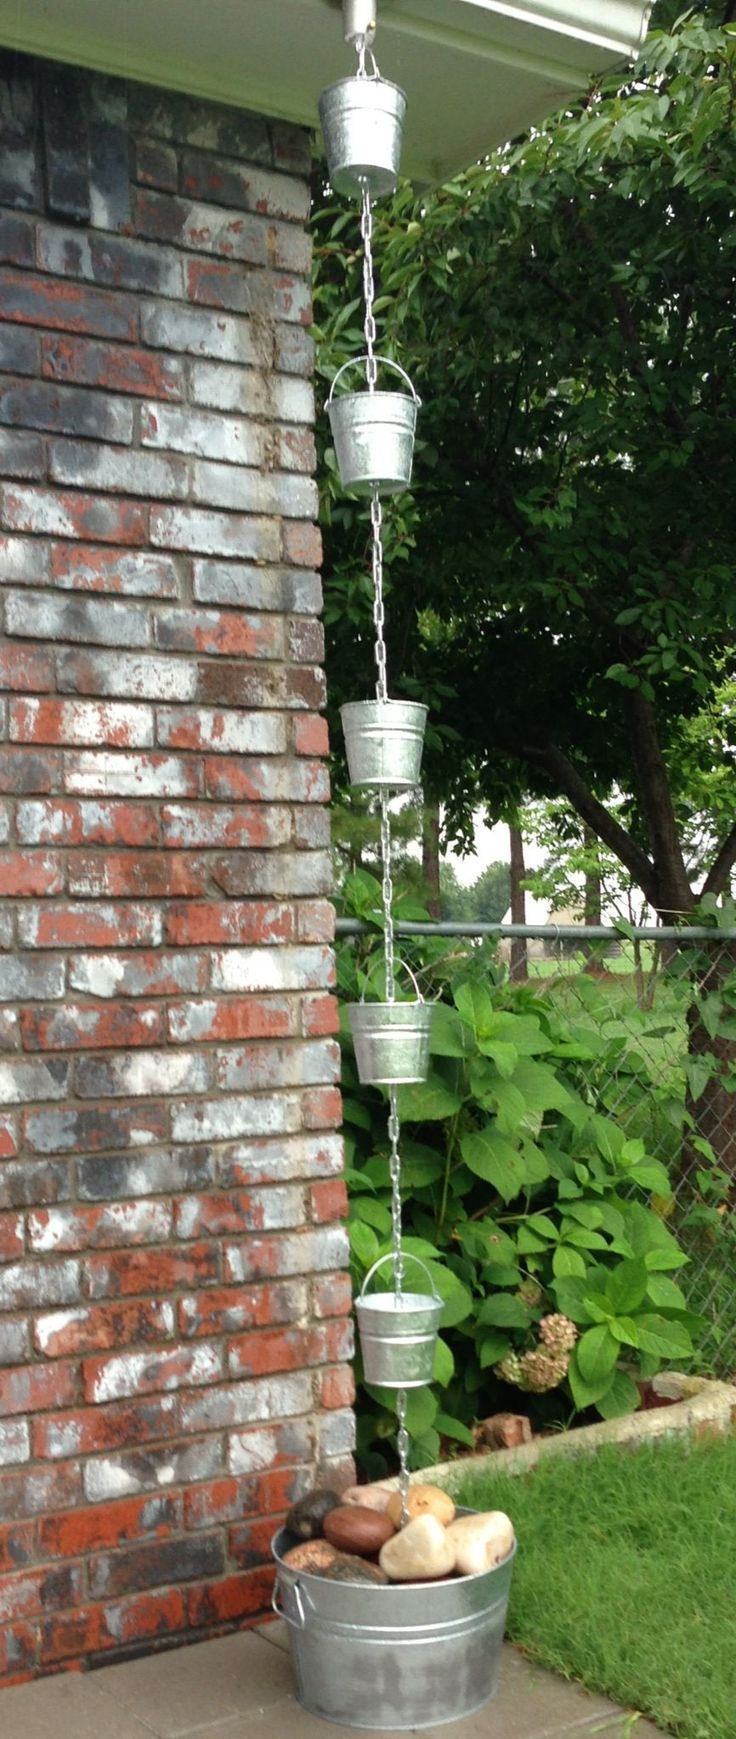 D.I.Y. rain chain ideas   Small galvanized pales from the dollar store and some chain, can make at home.